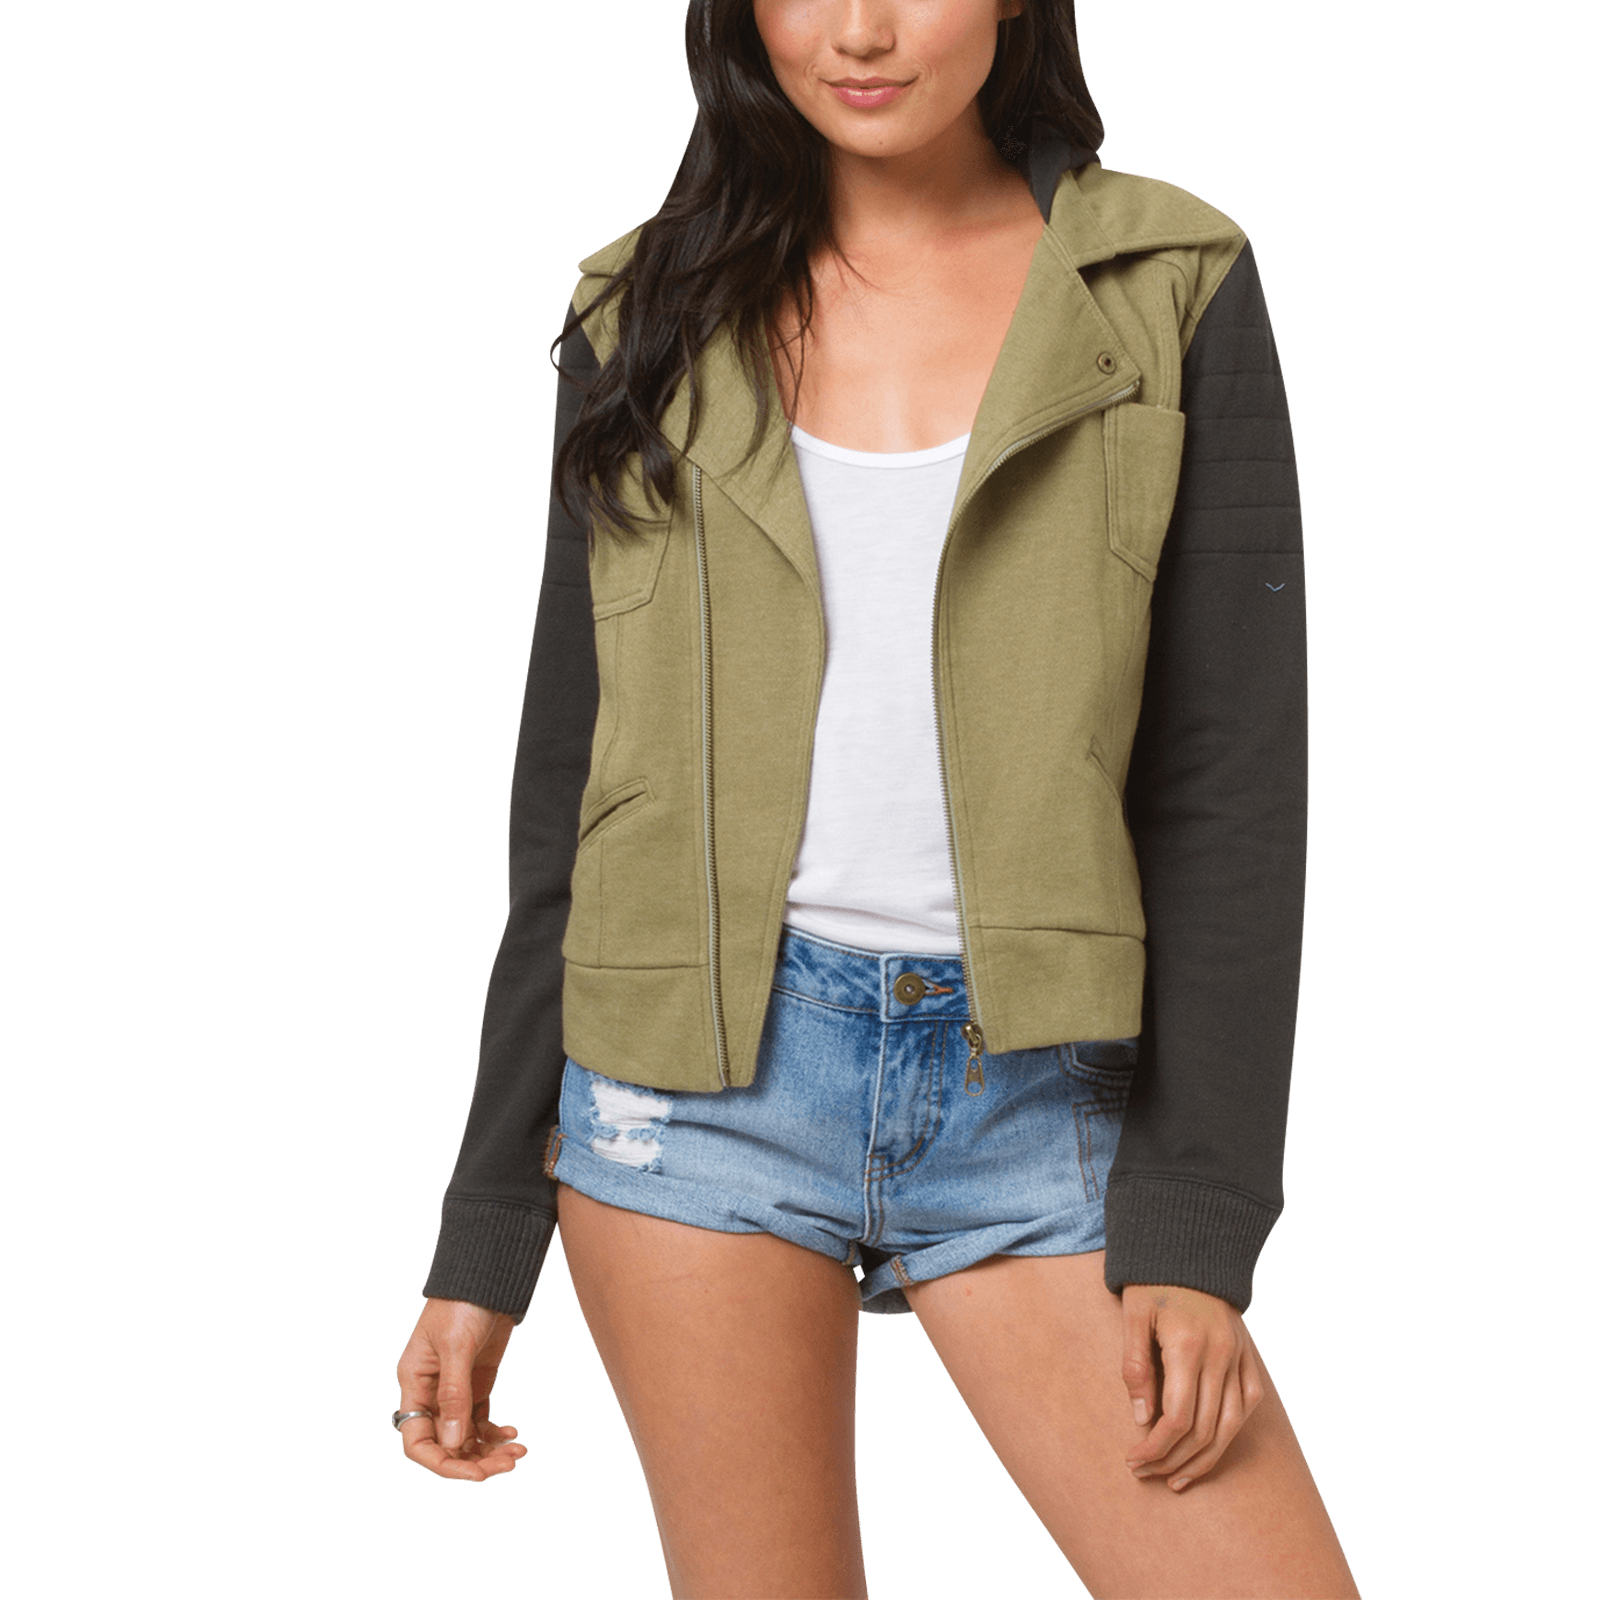 The Nitty-Gritty:The Quiet Down Jacket from Billabong has a short cut and a killer style that's perfect for everyday adventure. From The Brand:We've blended street-chic styling with a the classic look of a moto jacket to create the Quiet Down's subtly sophisticated appeal. Special details include color blocking, quilting details at the shoulders, and angled zip front, and a hood.